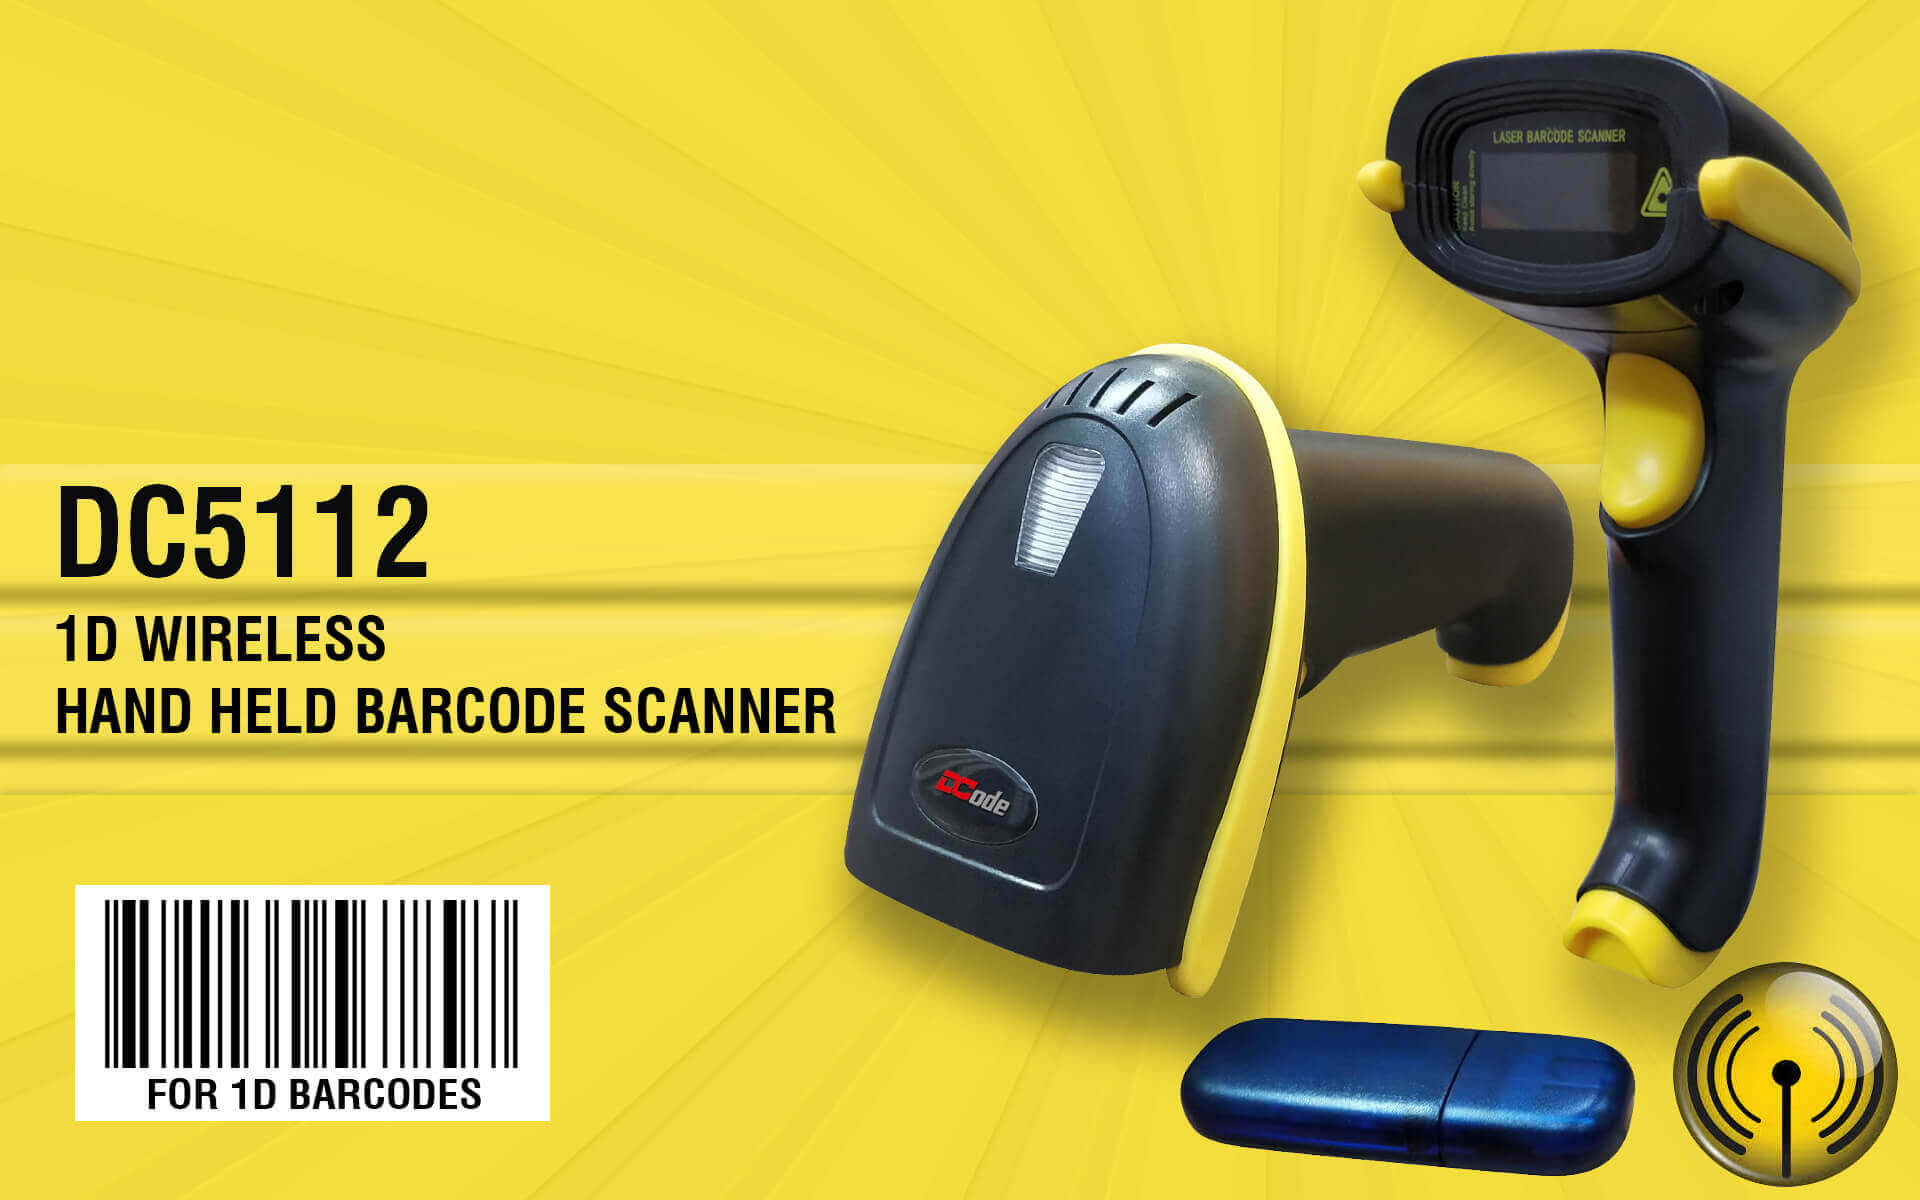 1 D Wireless Hand Hels Barcode scanner